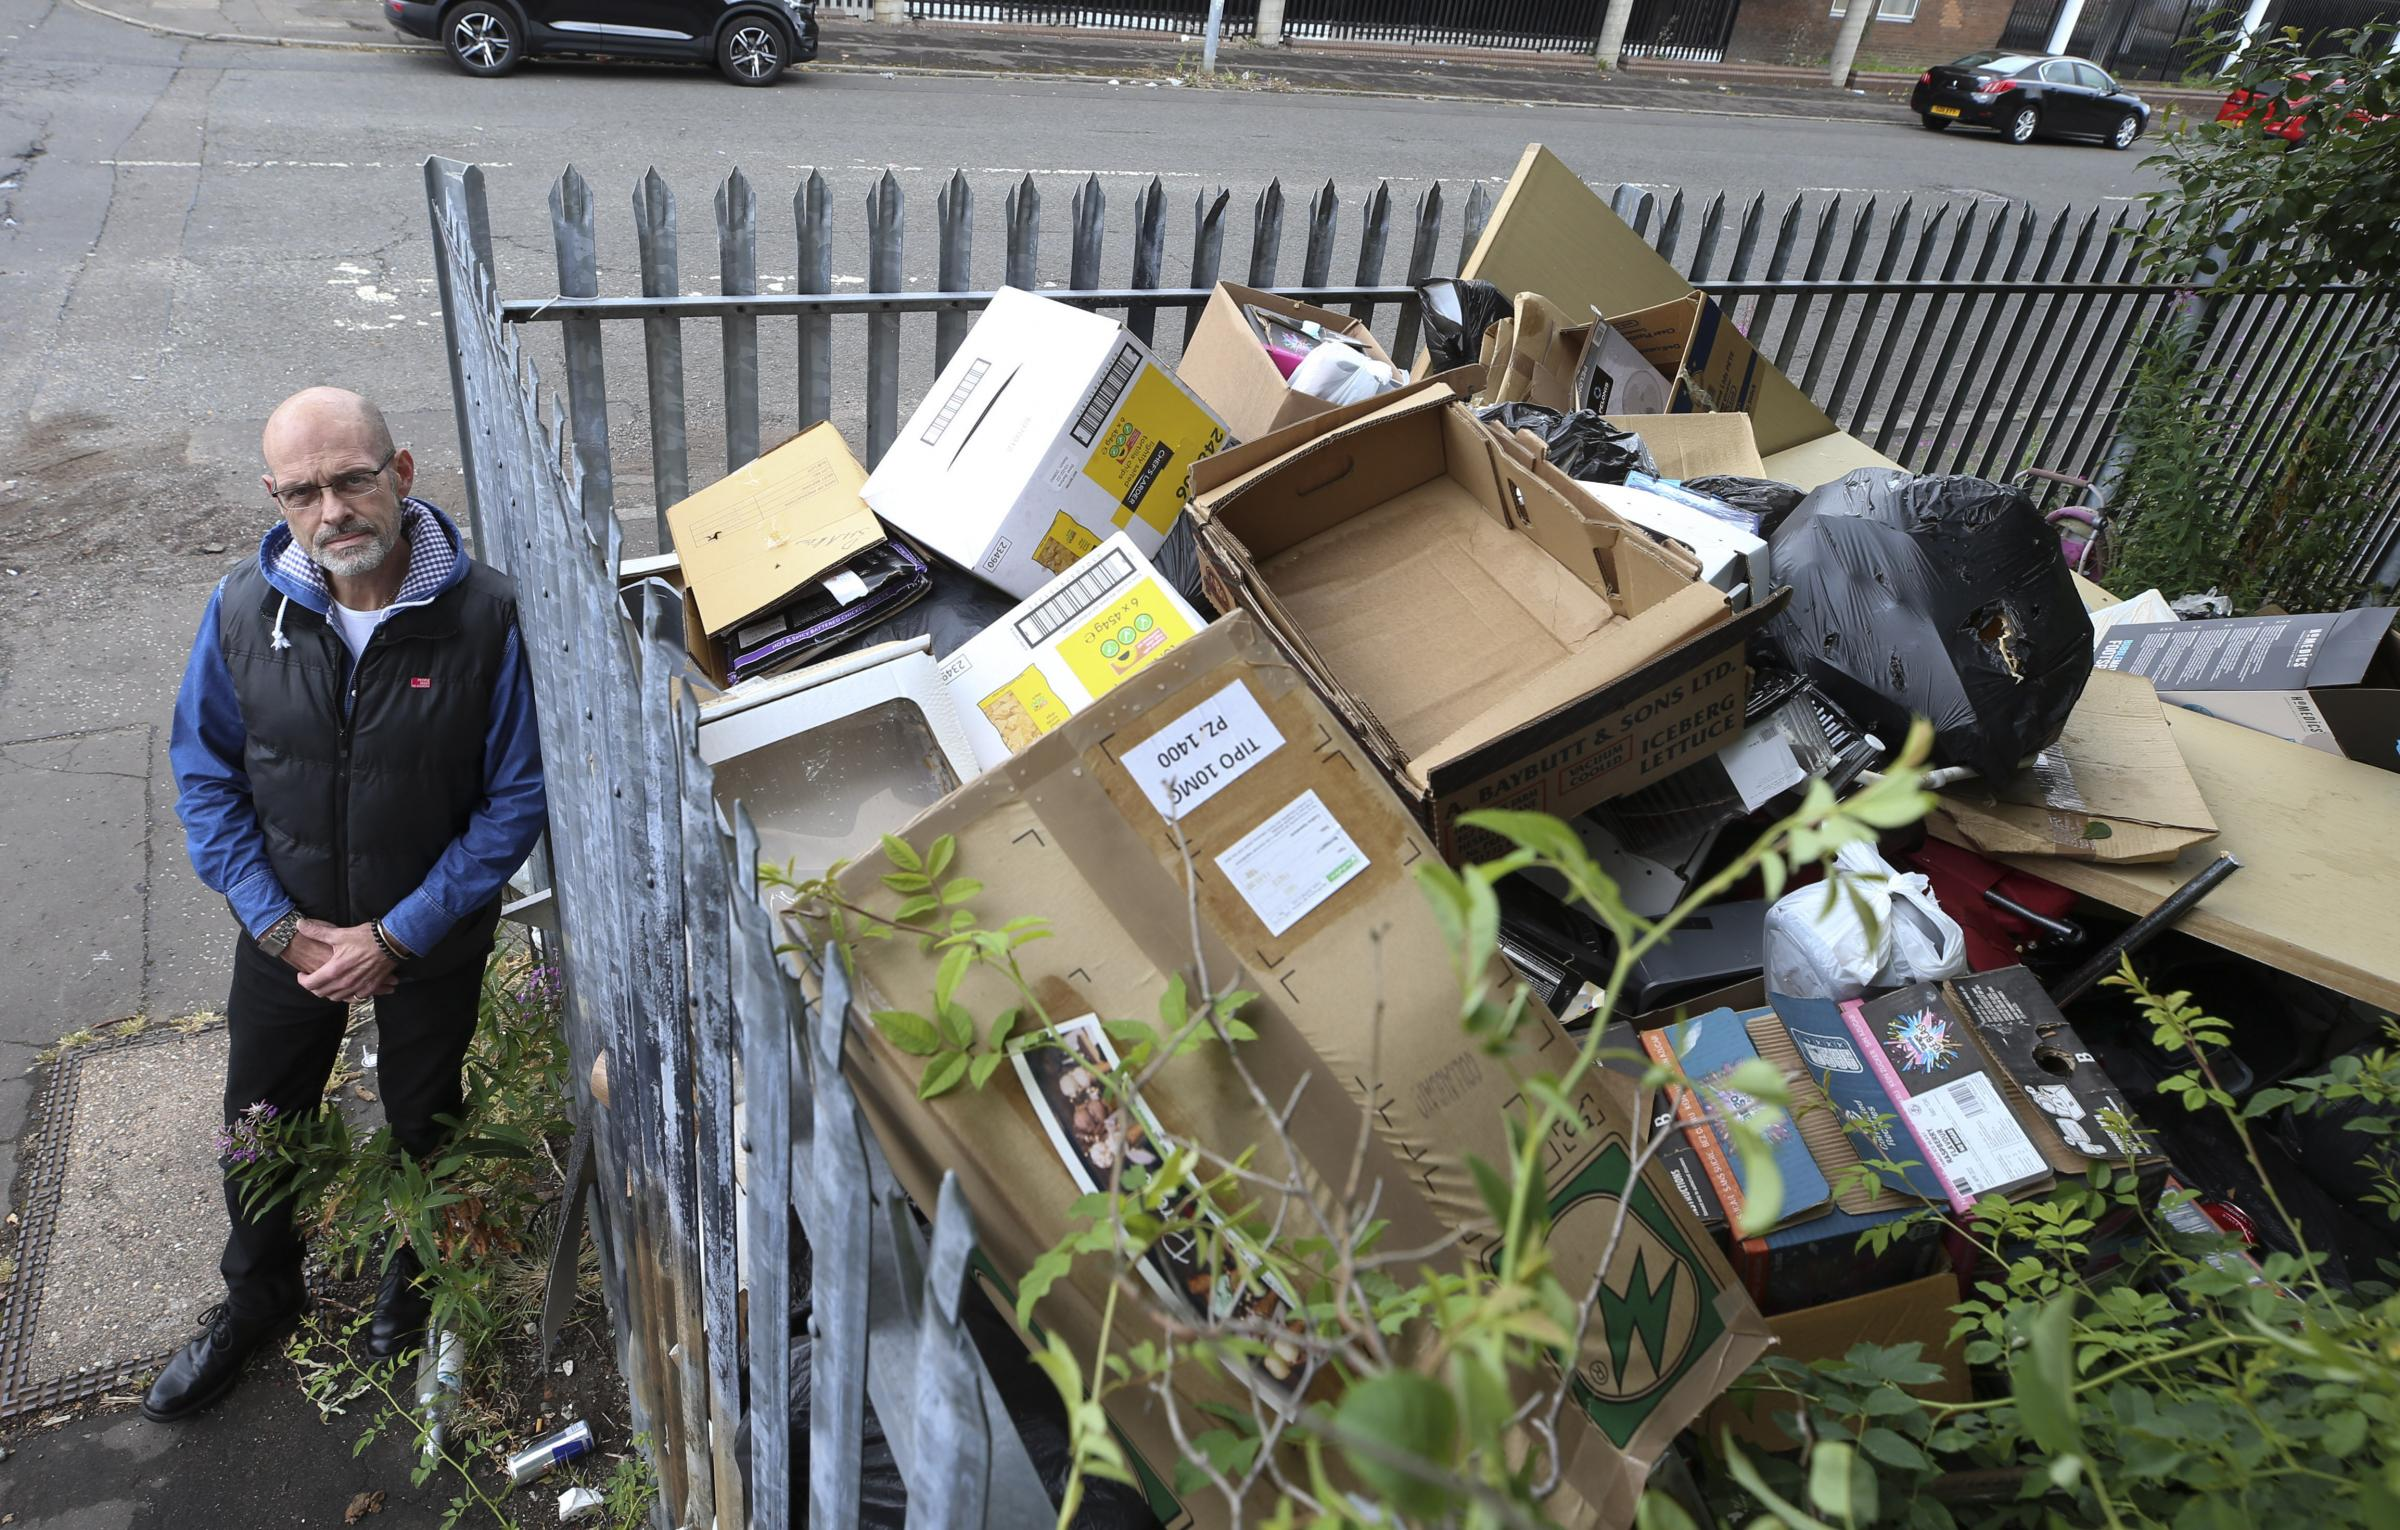 Glasgow flytipping eyesore left for weeks but council can't clear it